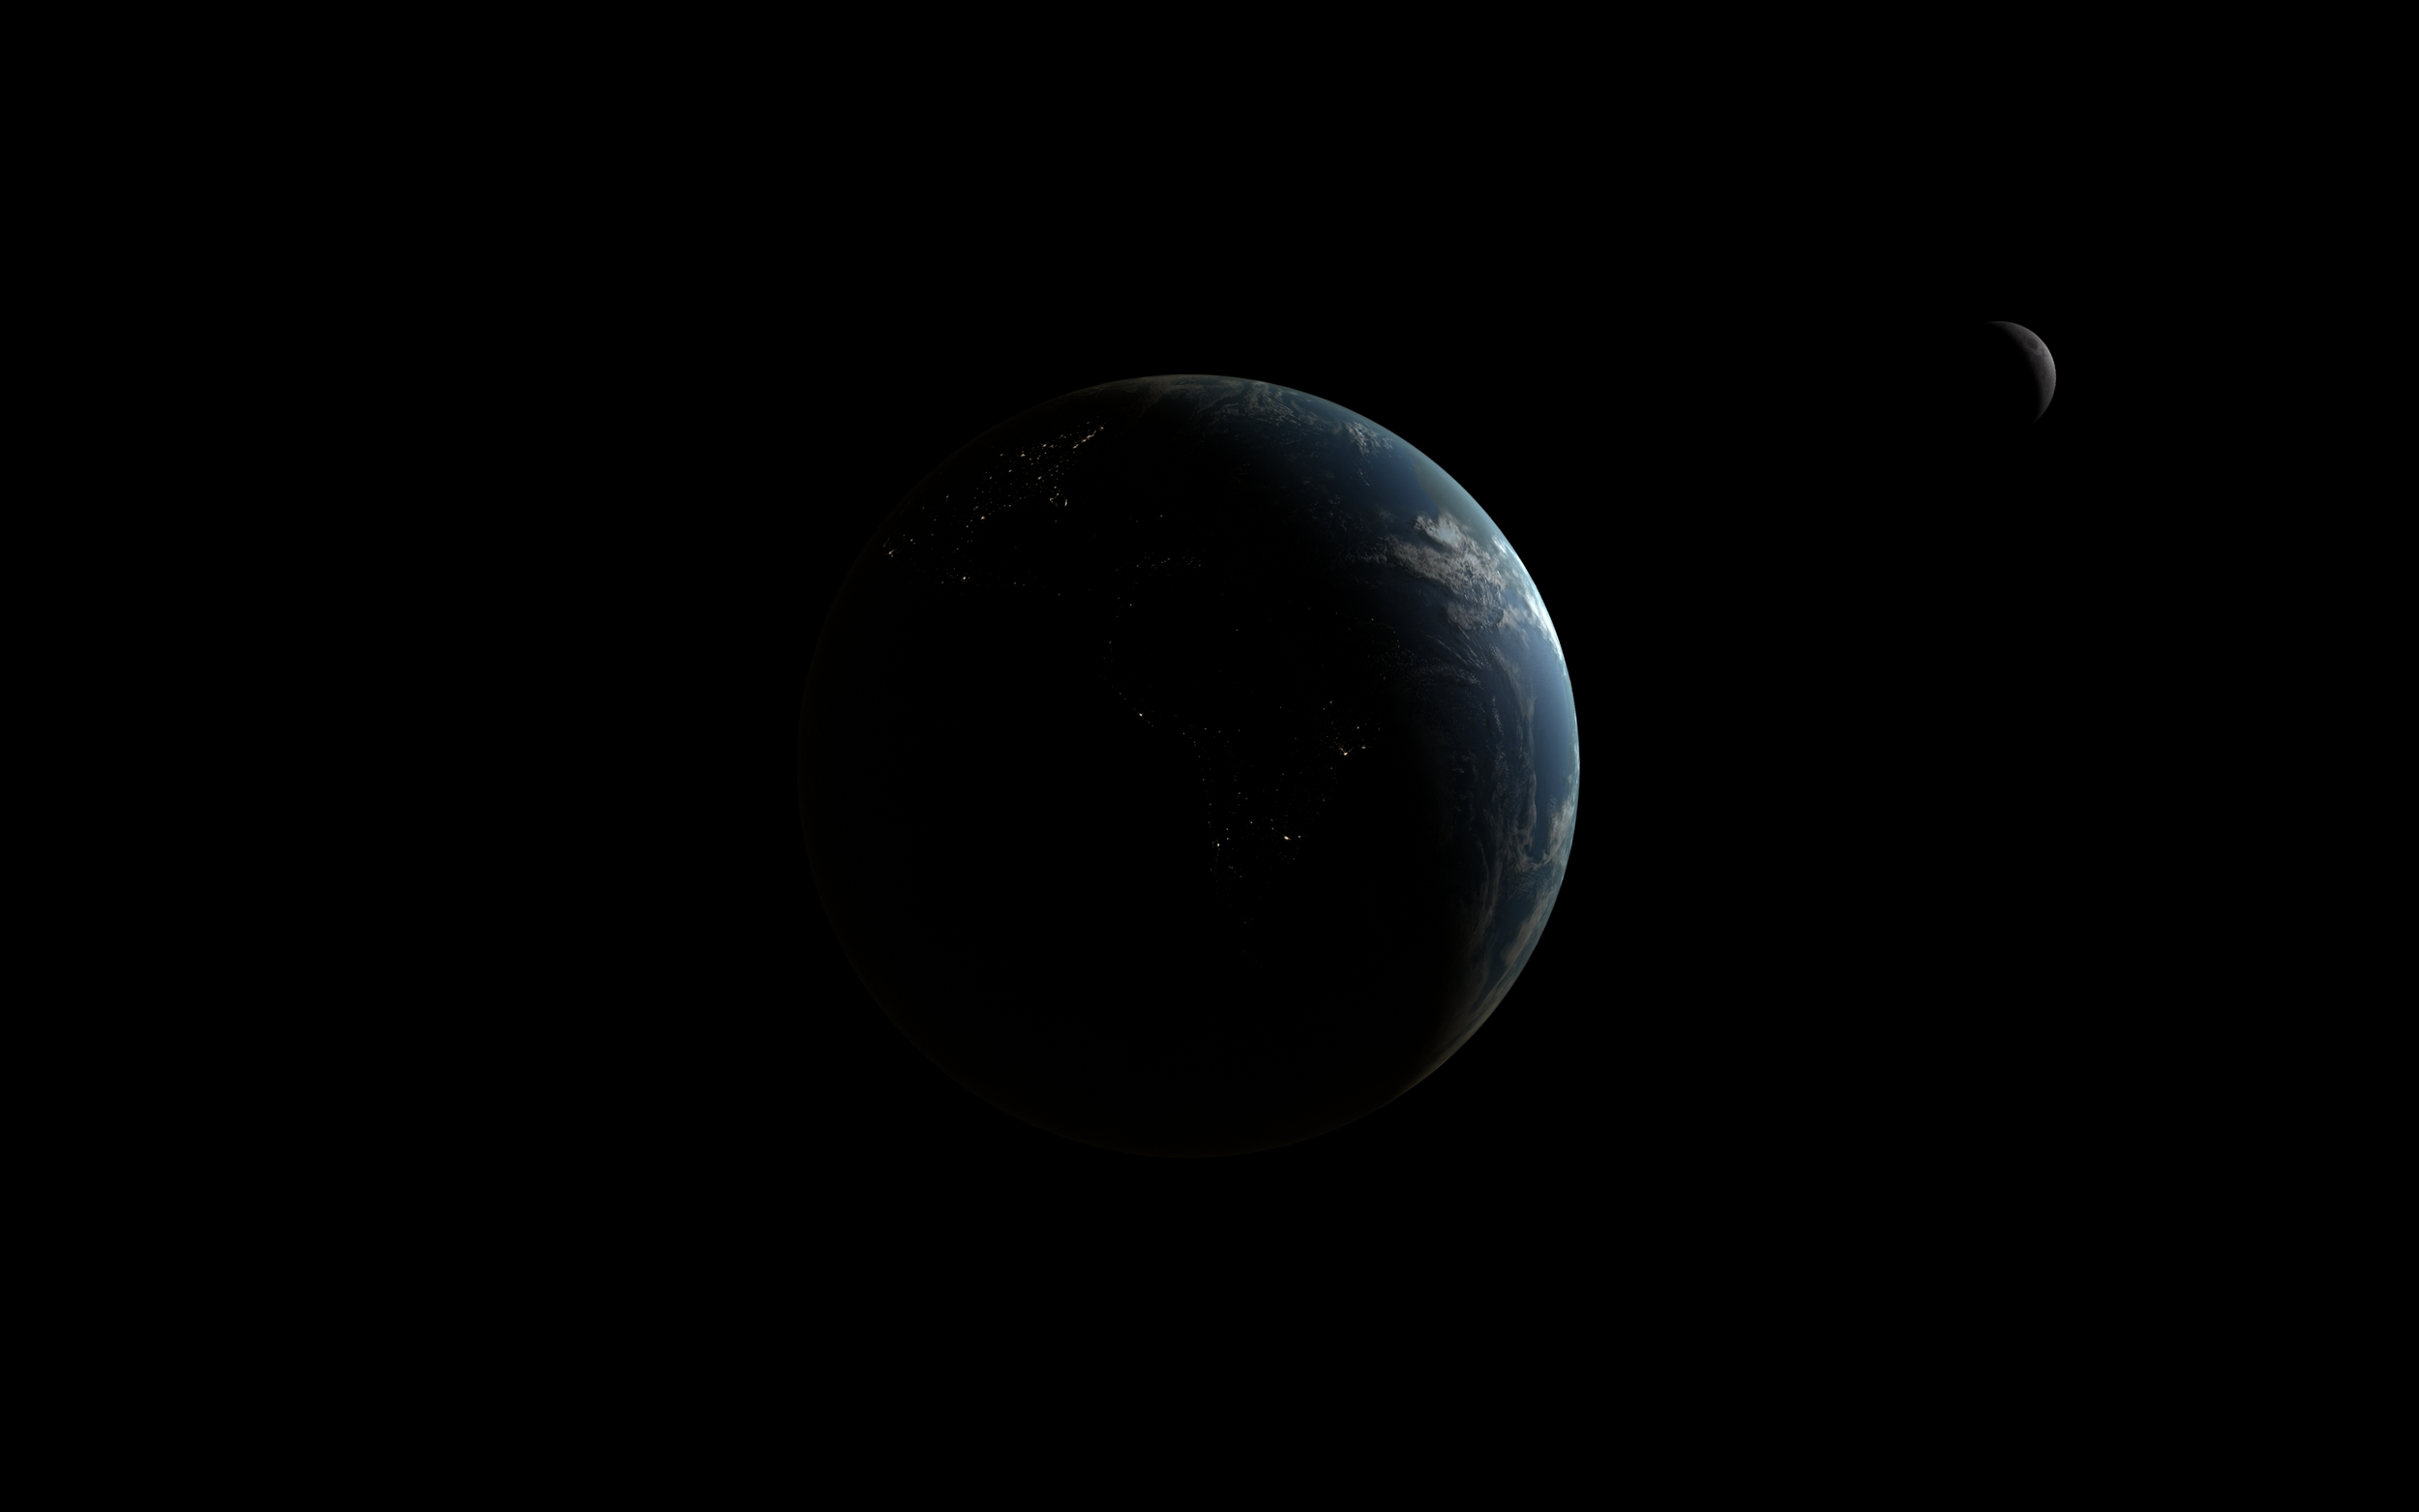 Earth and Moon, nighttime crescent. My personal favorite so far.